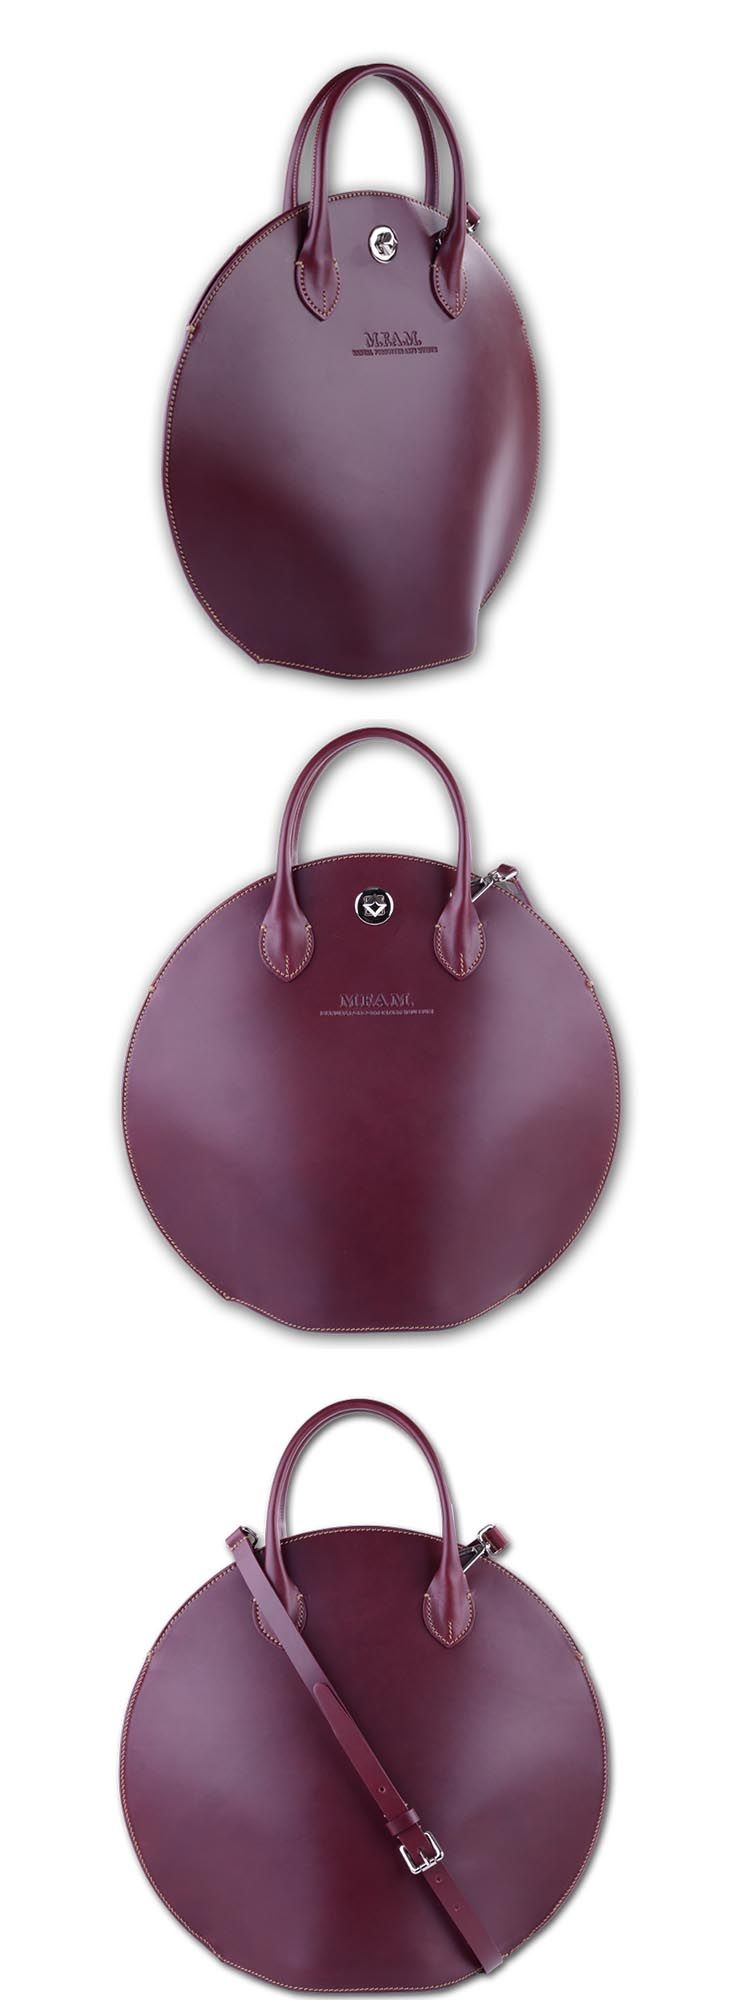 Manual Co handmade leather handbag. Made for women with style. For women who lov…vgracemitchell